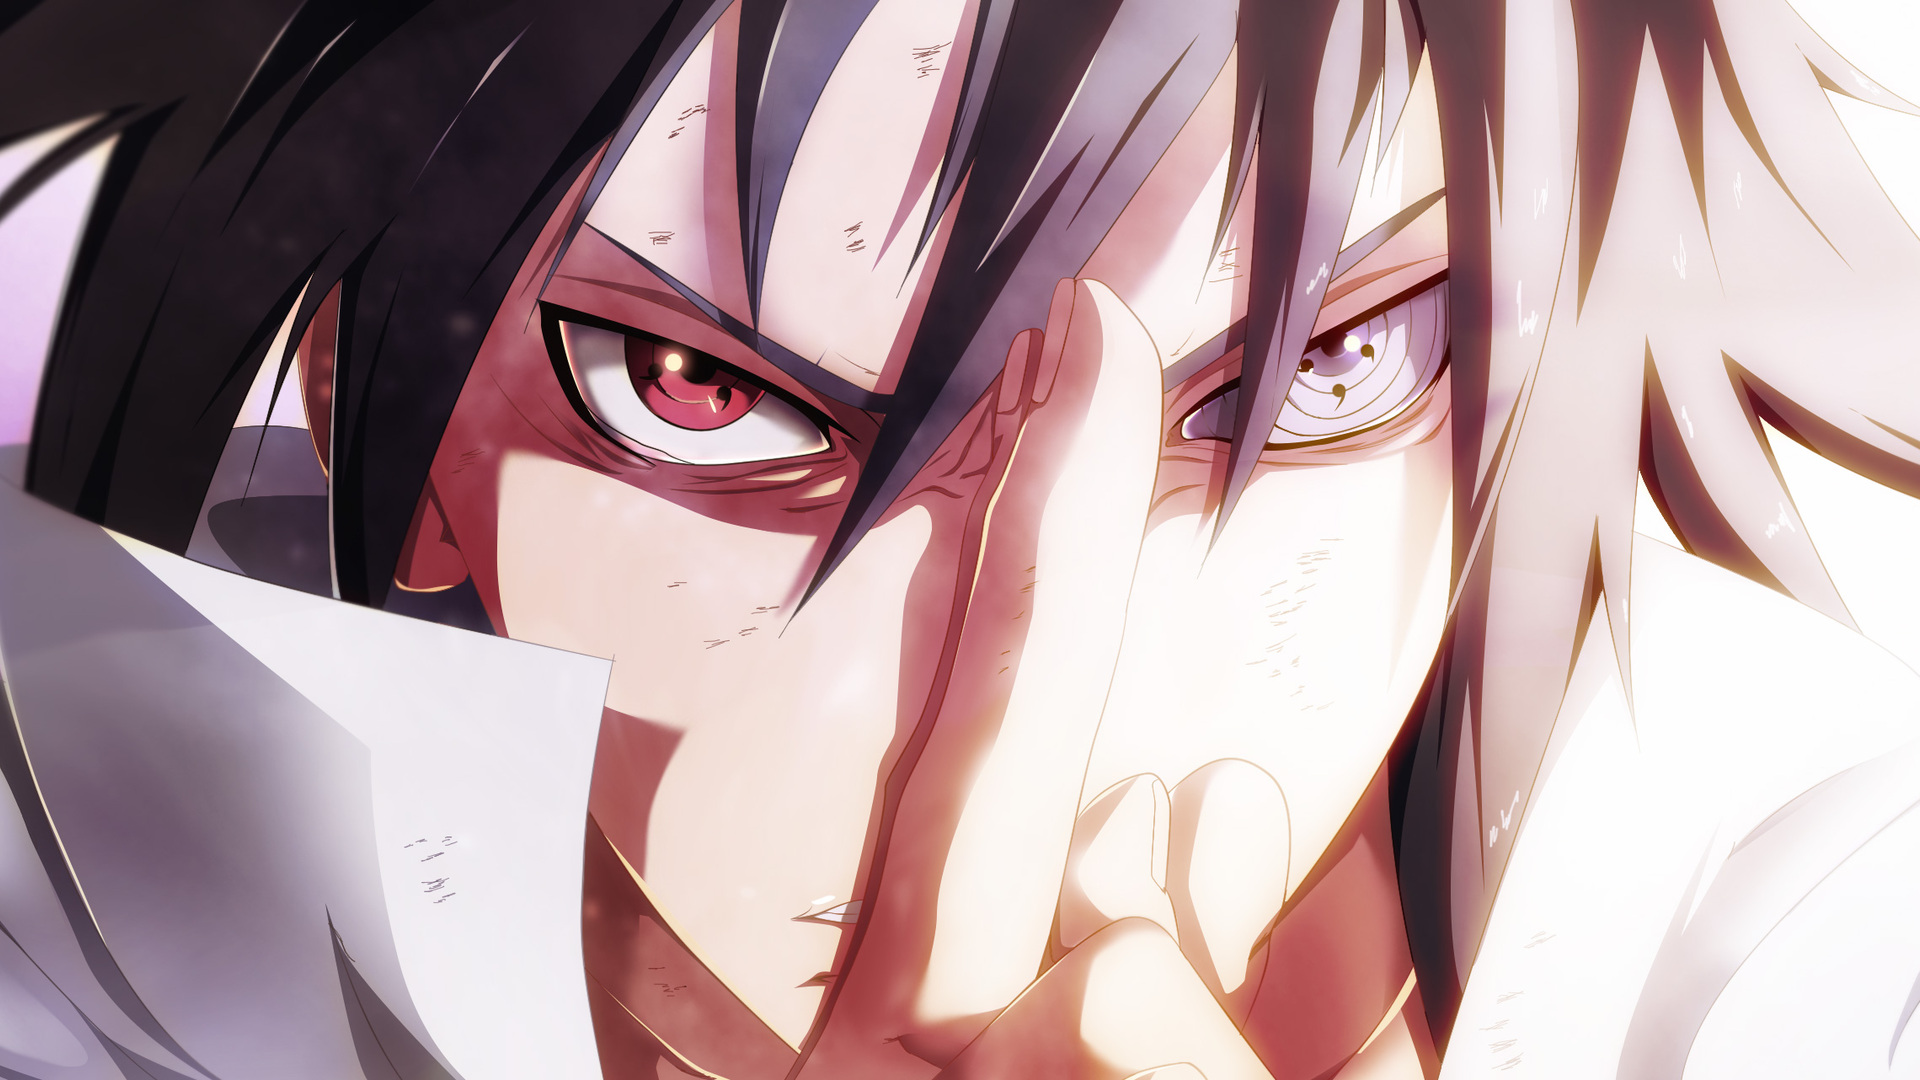 1920x1080 Sasuke Uchiha Naruto Laptop Full Hd 1080p Hd 4k Wallpapers Images Backgrounds Photos And Pictures